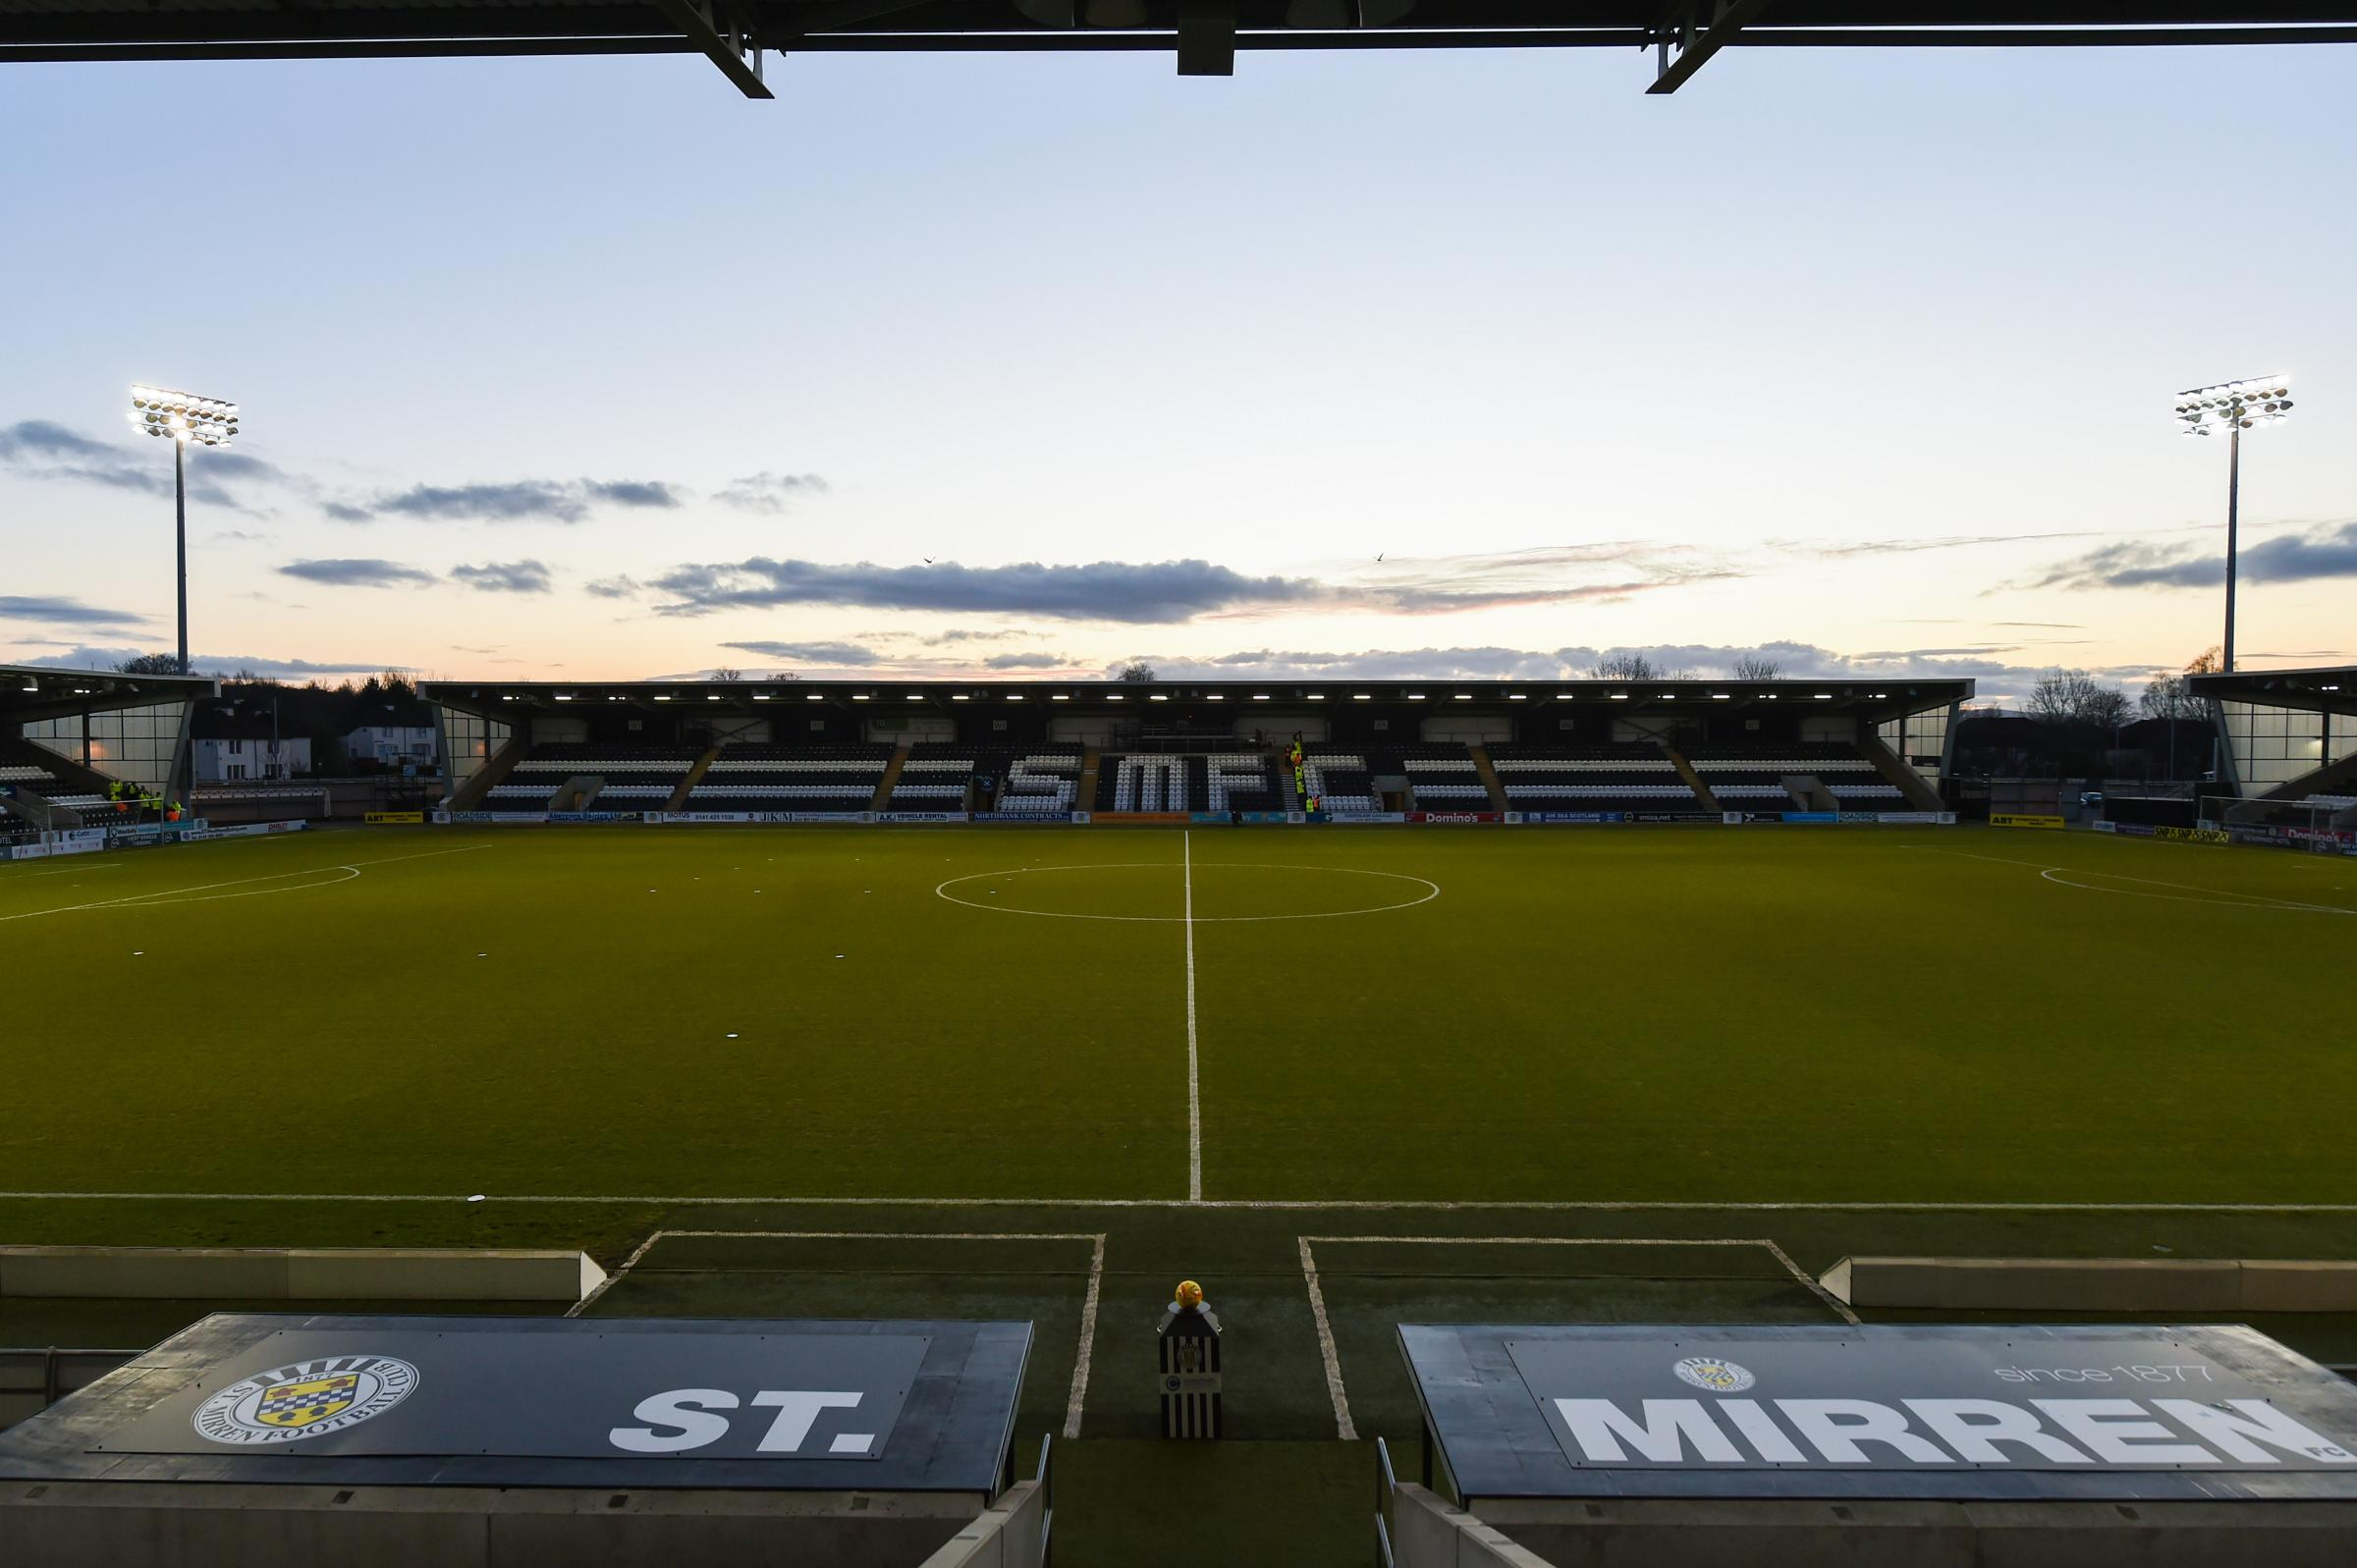 St Mirren issue update on pitch ahead of Celtic clash